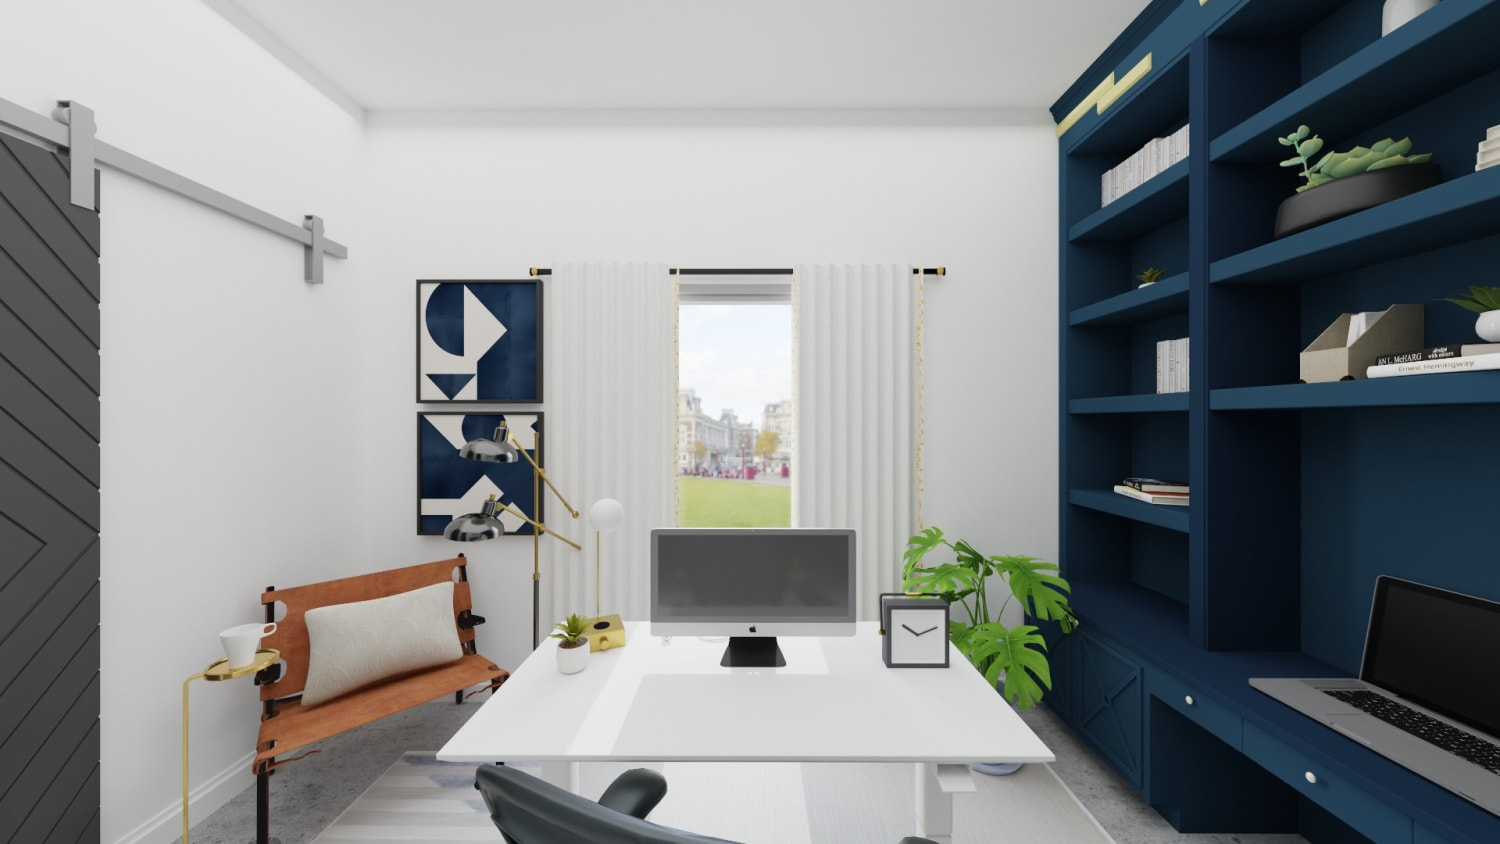 A Modern Home Office Design Featuring Peacock Blue Shelving Design By Spacejoy